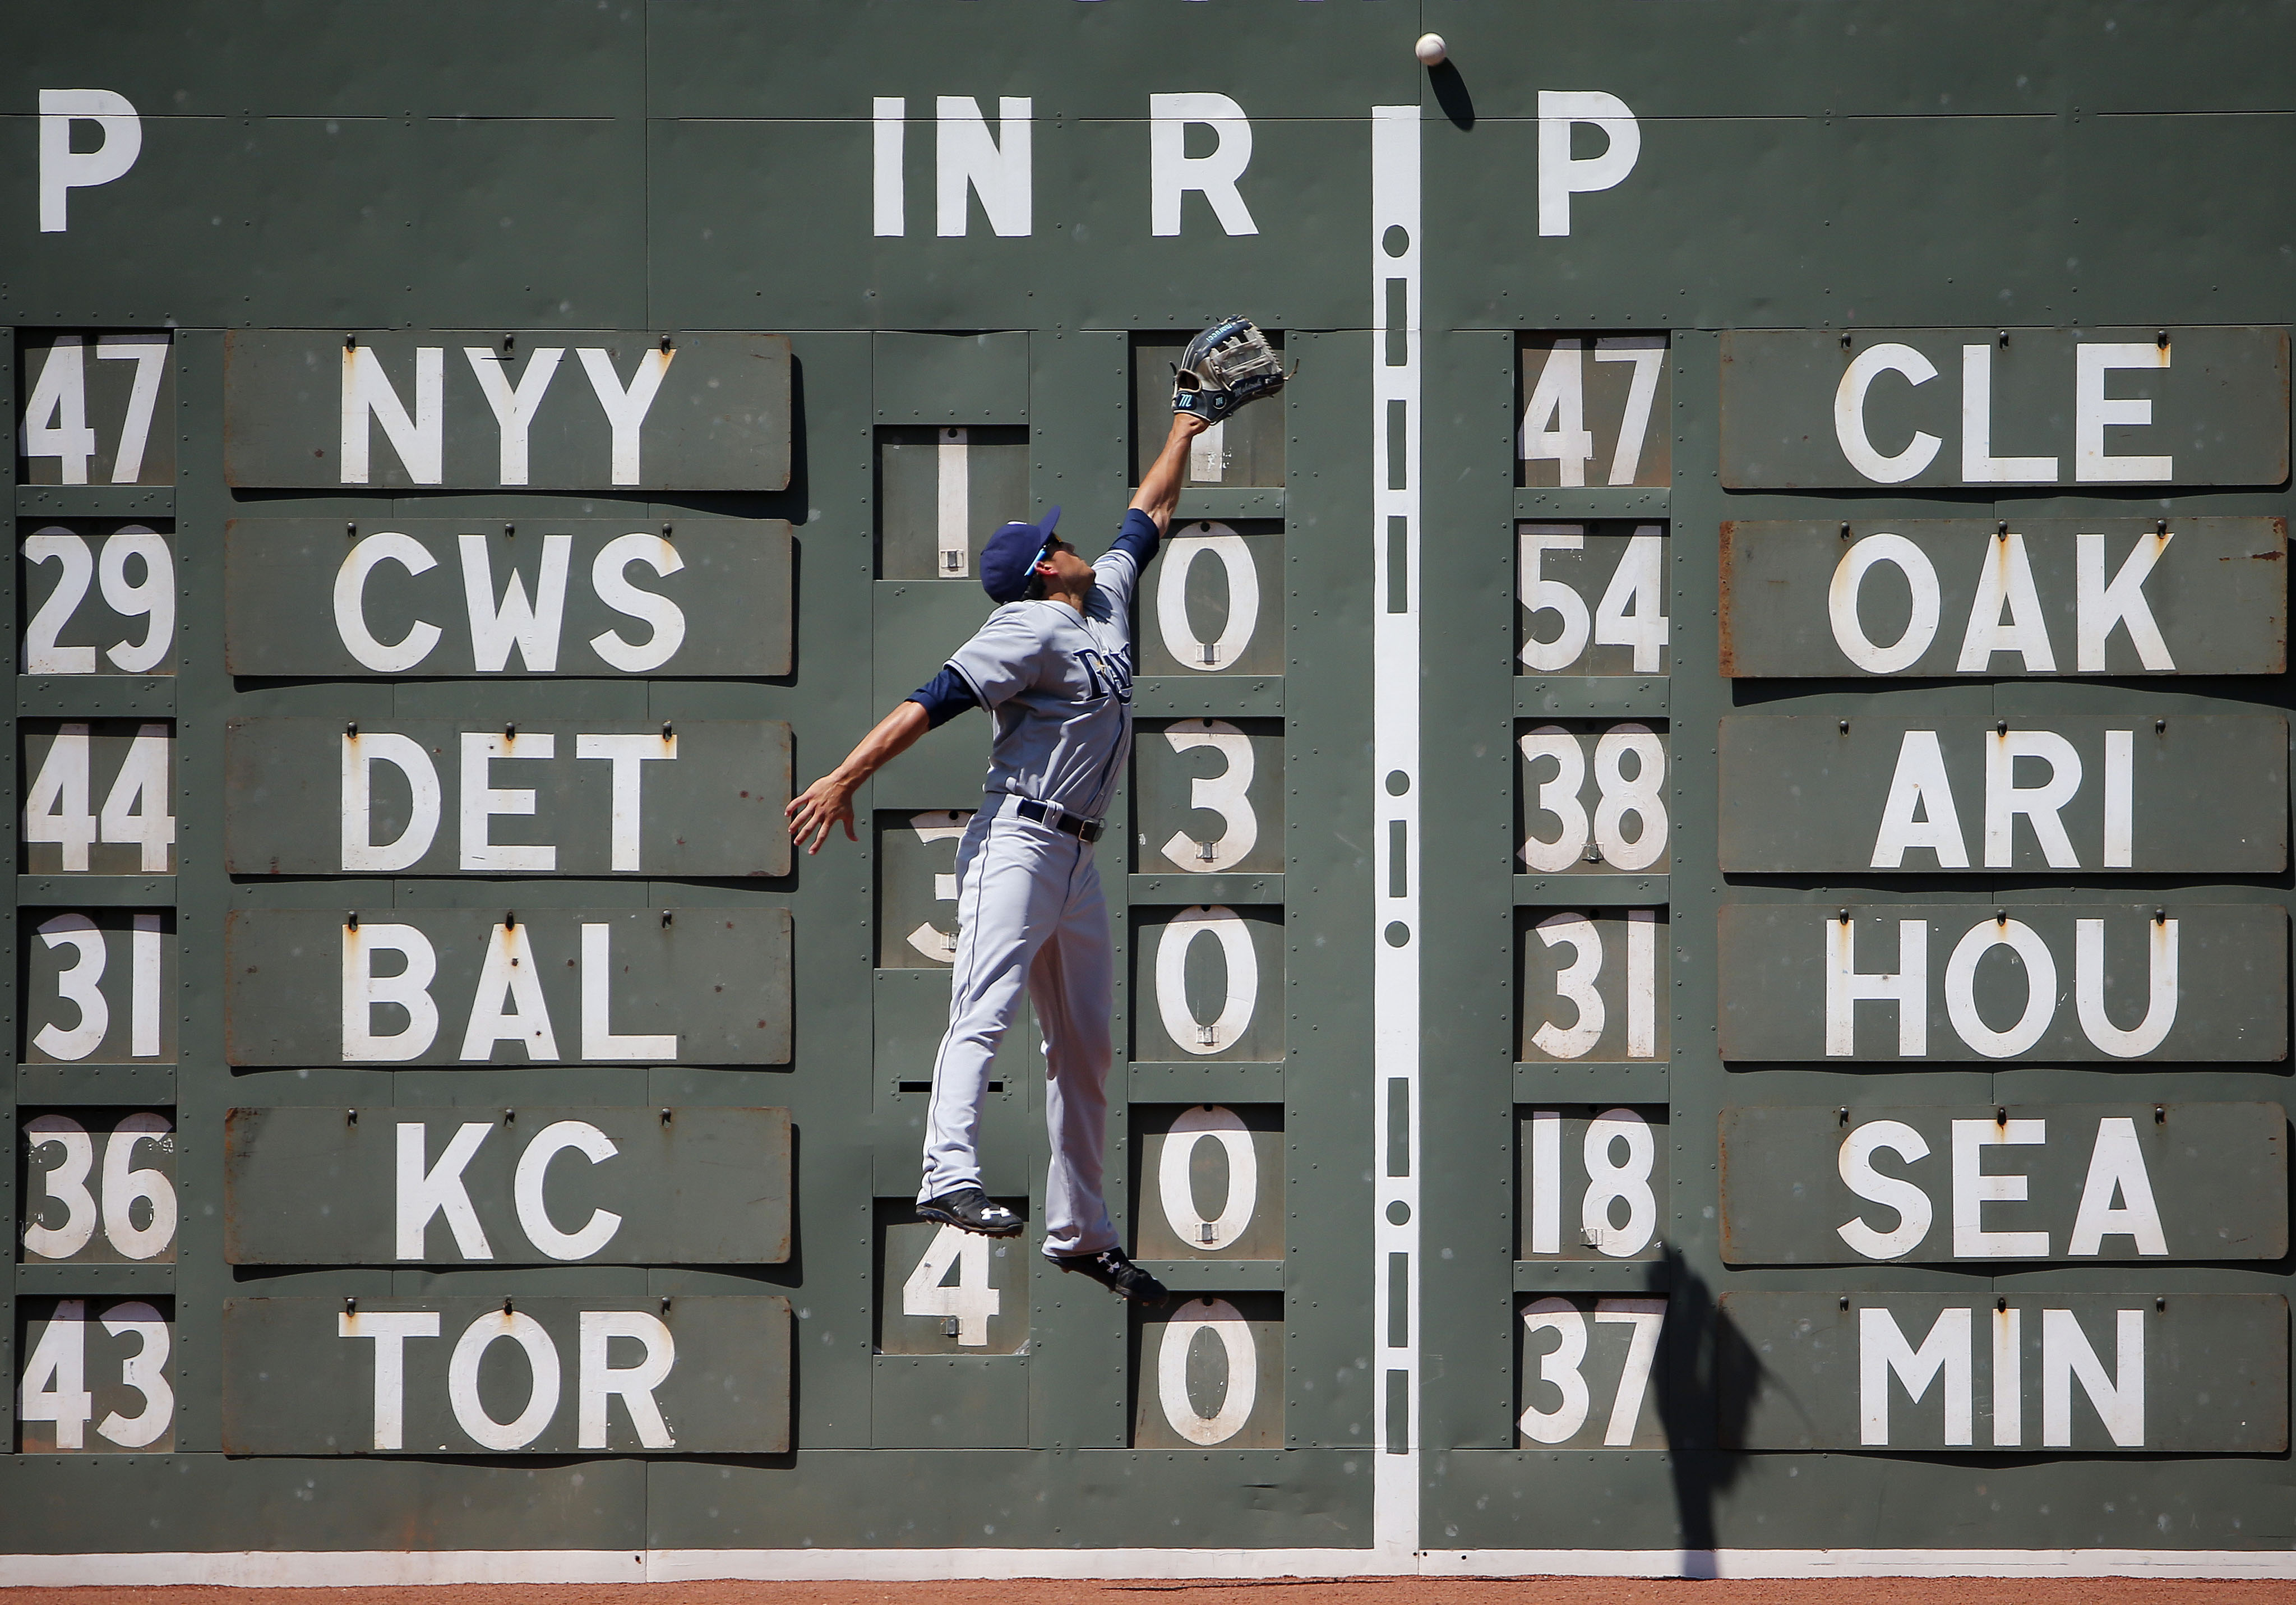 Tampa Bay Rays left fielder Mikie Mahtook leaps but can't get to an RBI double by Boston Red Sox's David Ortiz during the third inning of a baseball game at Fenway Park in Boston Sunday, Aug. 2, 2015. (AP Photo/Winslow Townson)